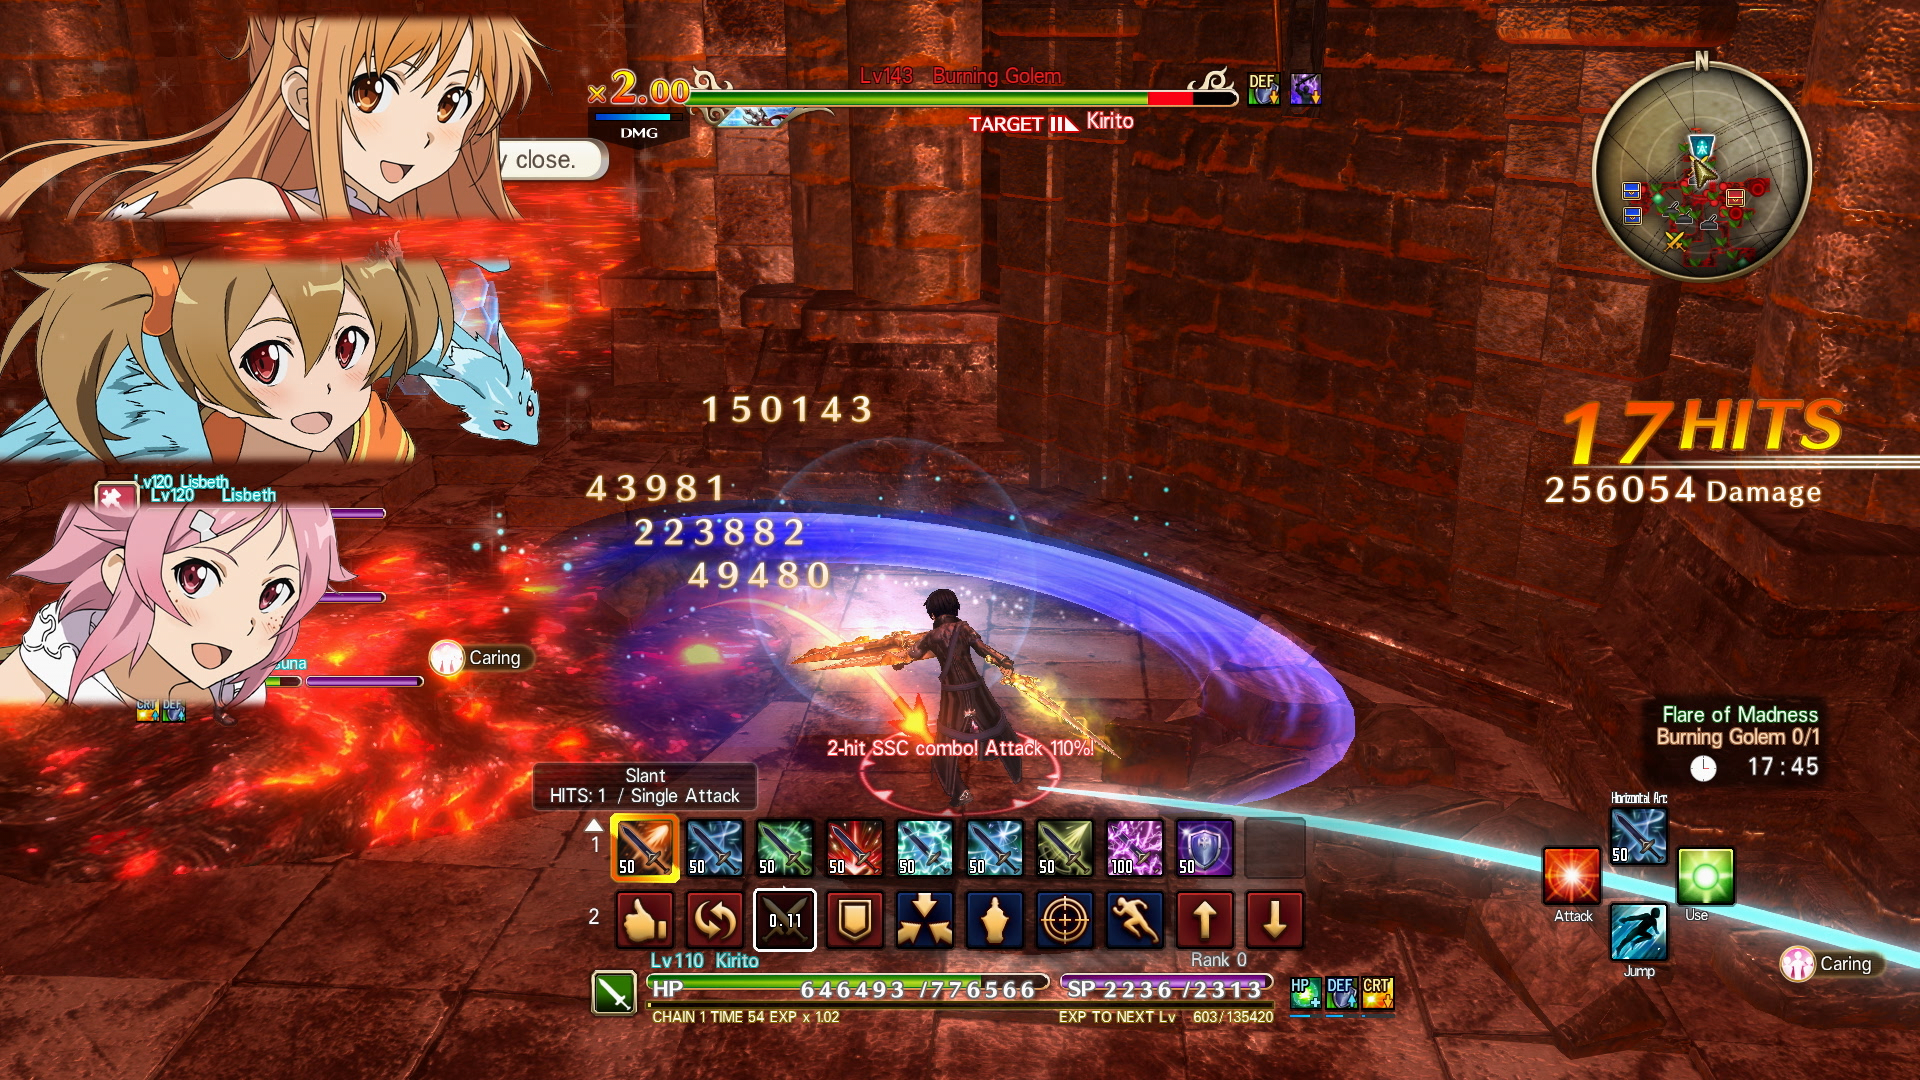 Sword Art Online: Hollow Realization Deluxe edition is coming to PC